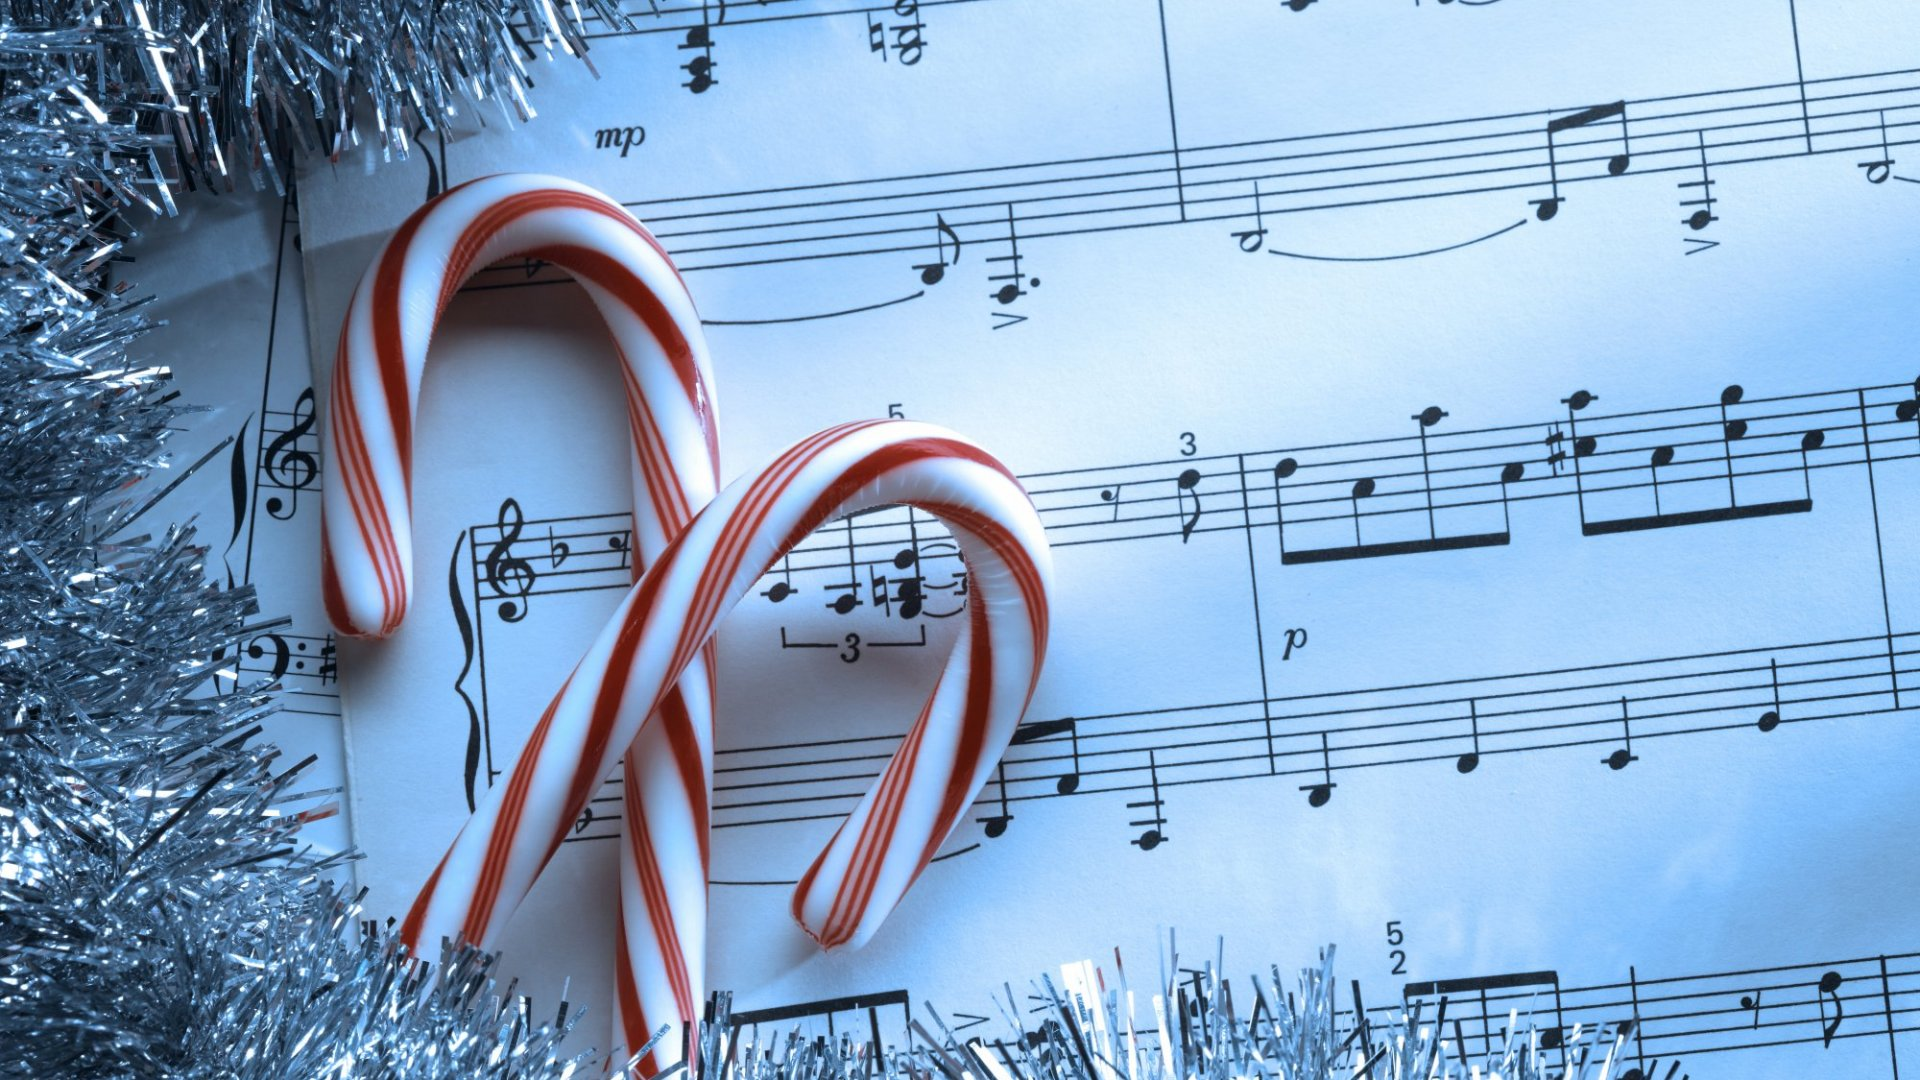 Want Happier Workers and Shoppers During the Holidays? Play Seasonal Music Like This